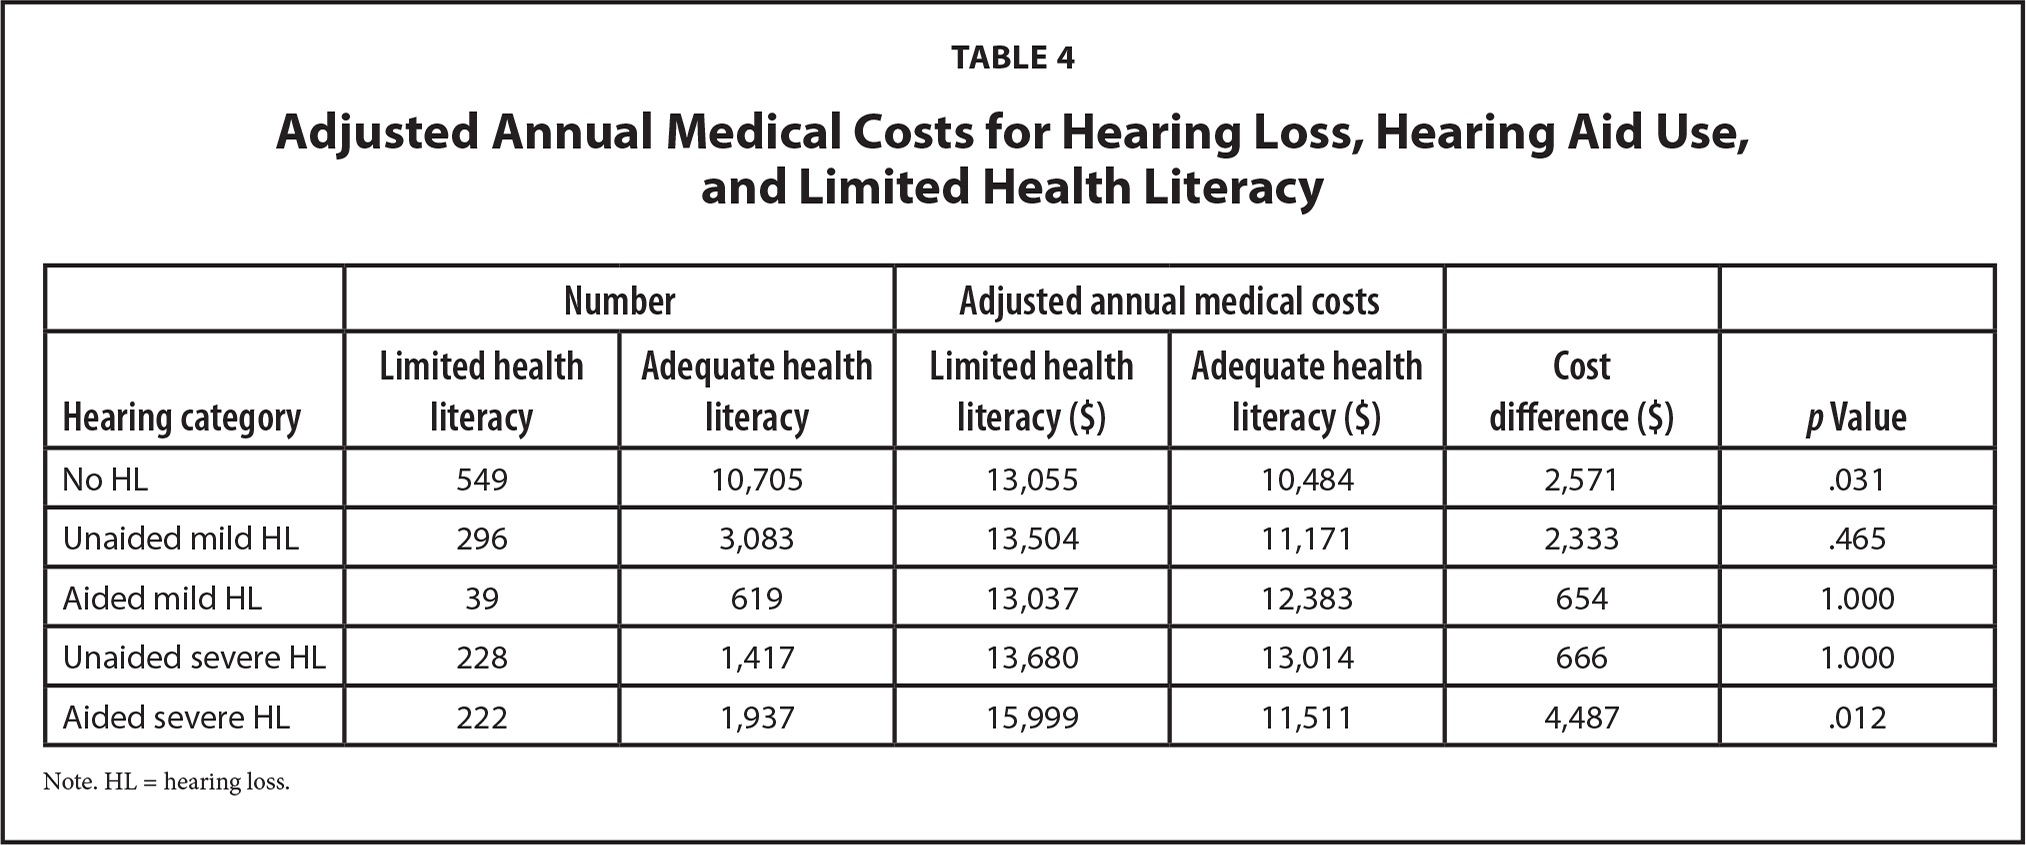 Adjusted Annual Medical Costs for Hearing Loss, Hearing Aid Use, and Limited Health Literacy